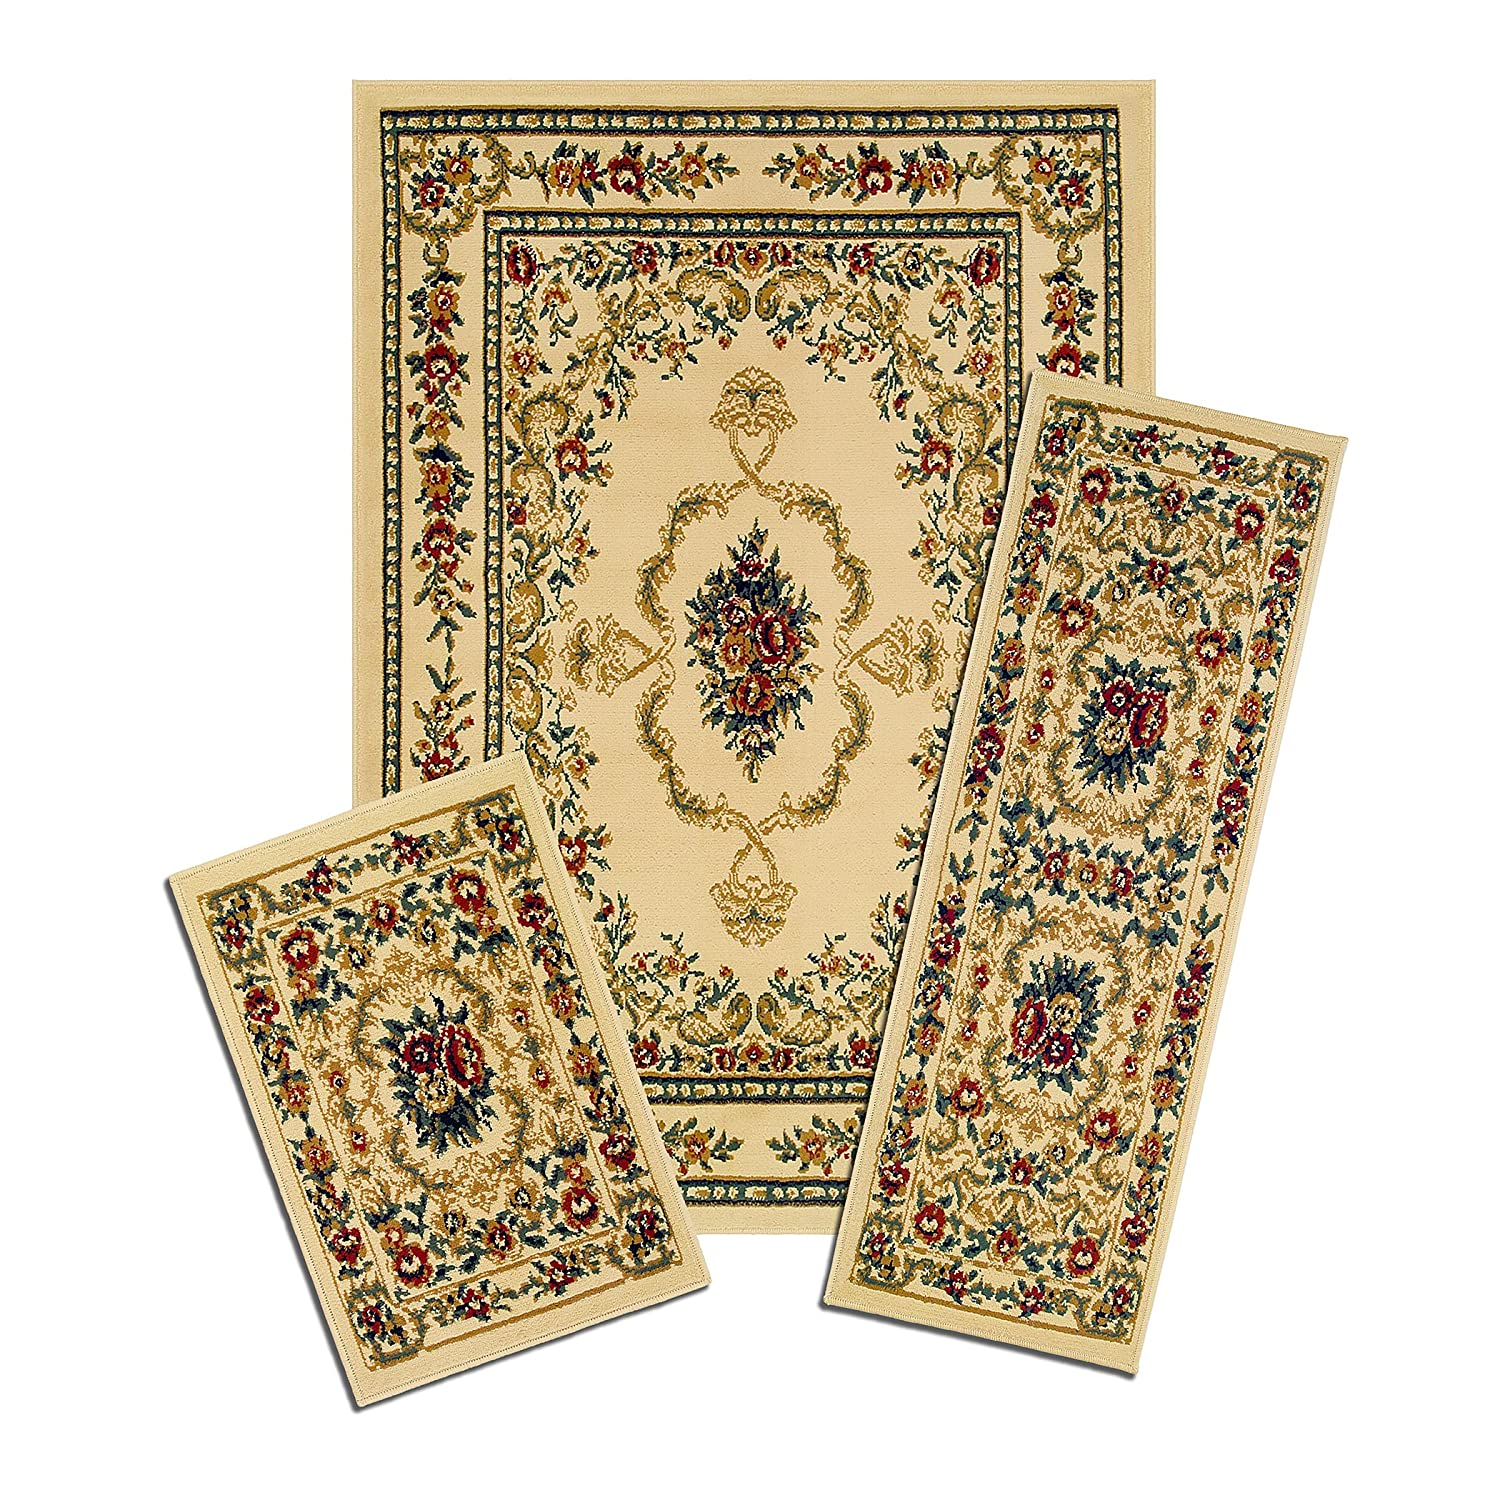 Achim Home Furnishings Capri Rug Set, Savonnerie, 3-Piece, White Achim Imports X470/372-W